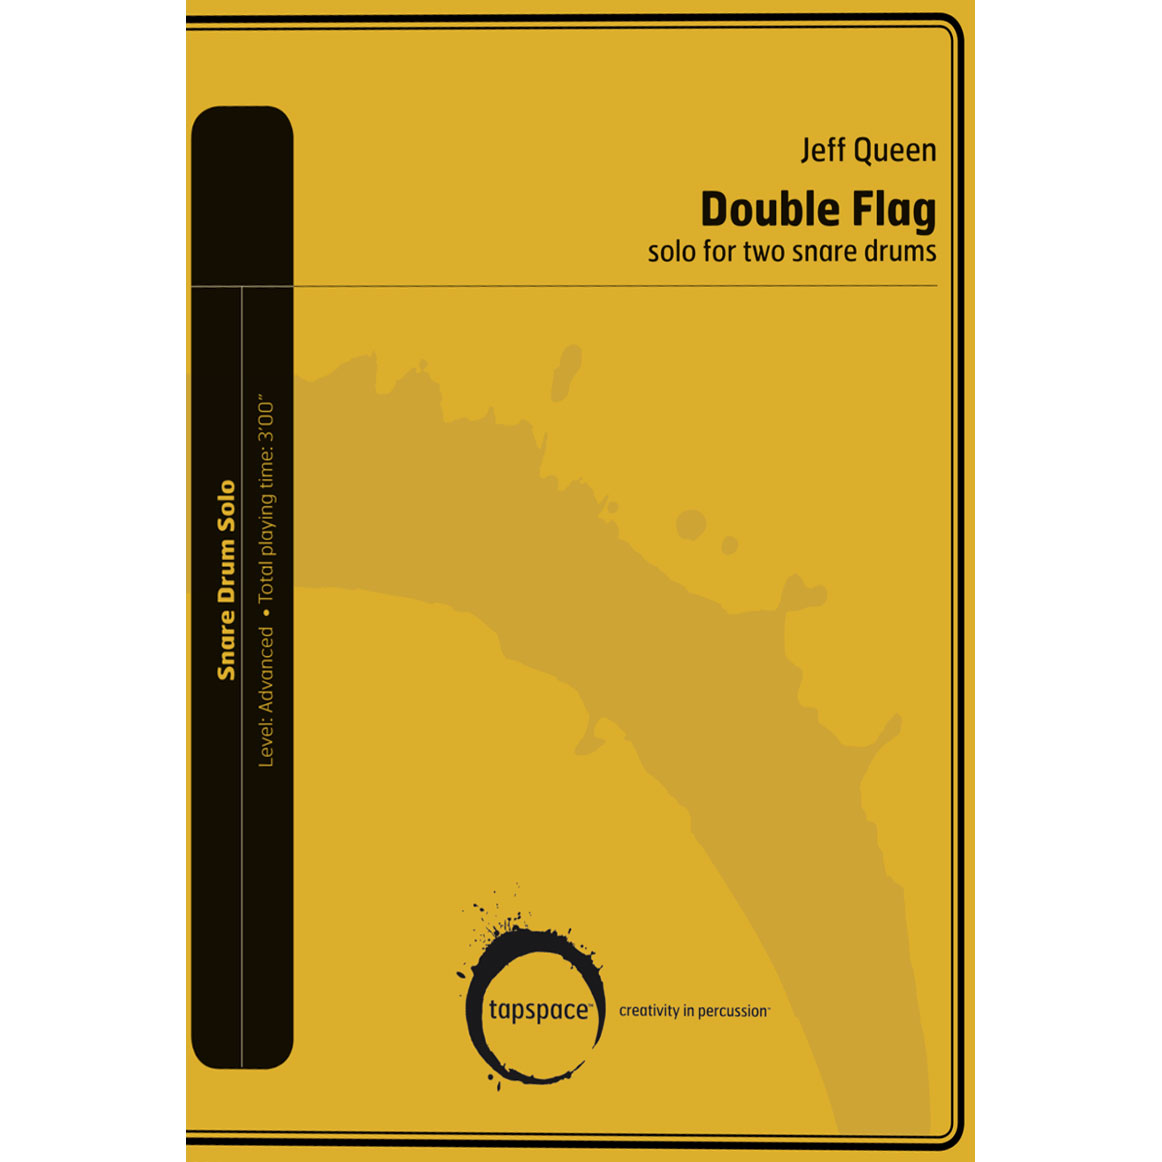 Double Flag by Jeff Queen